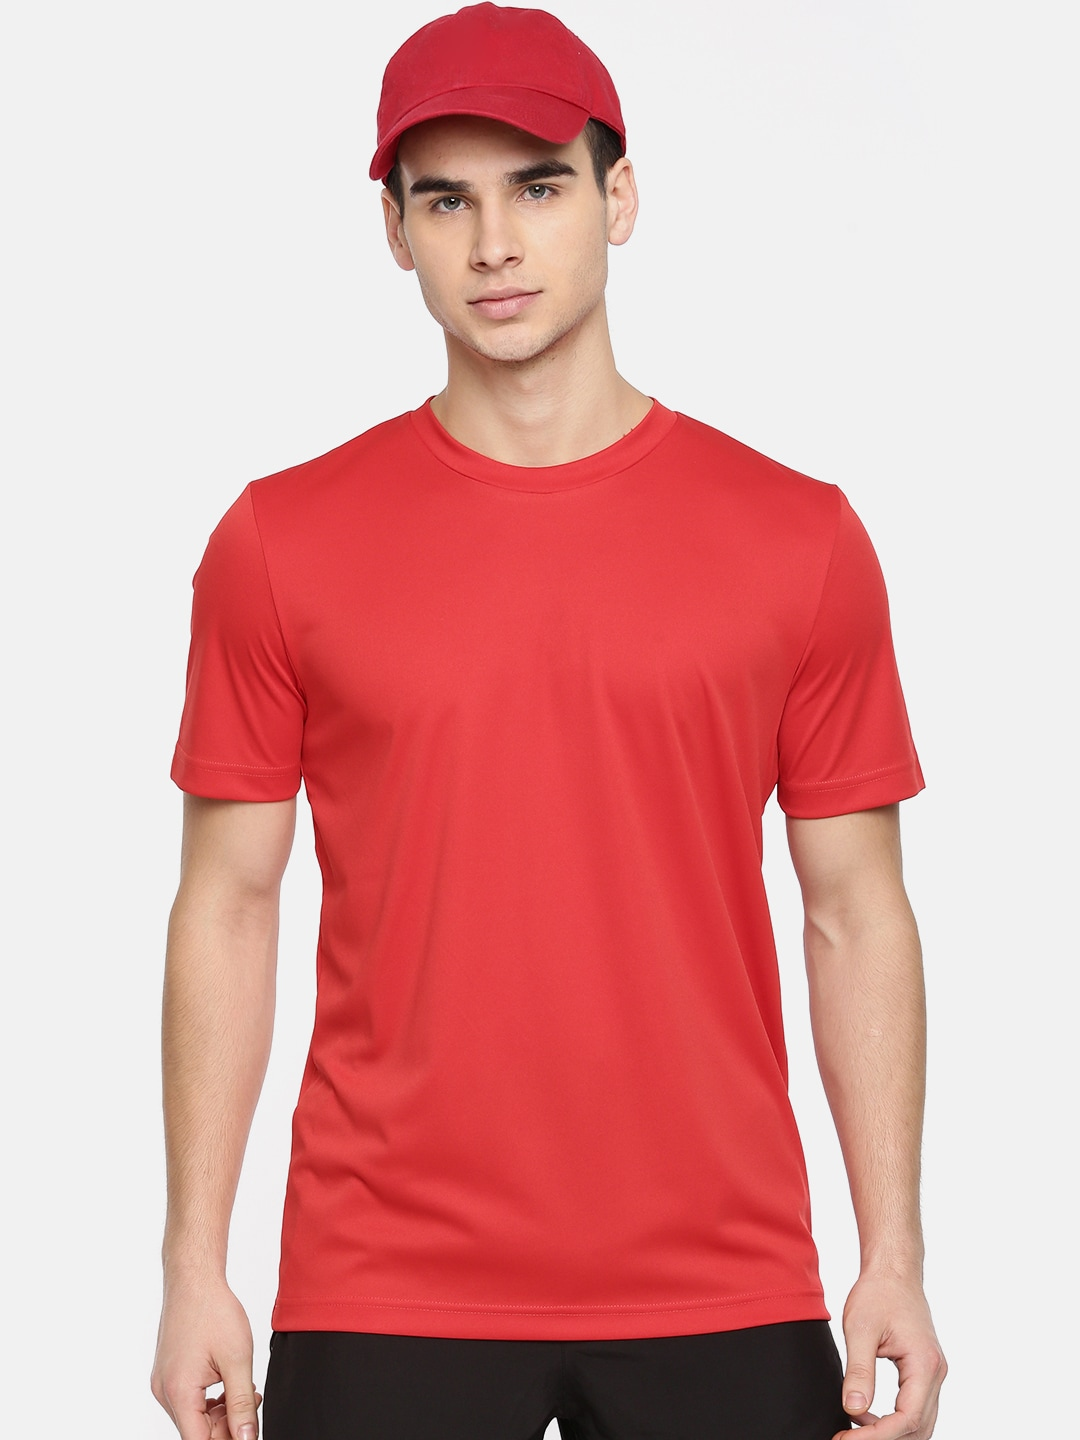 Puma T shirts - Buy Puma T Shirts For Men   Women Online in India e2a4c78a1